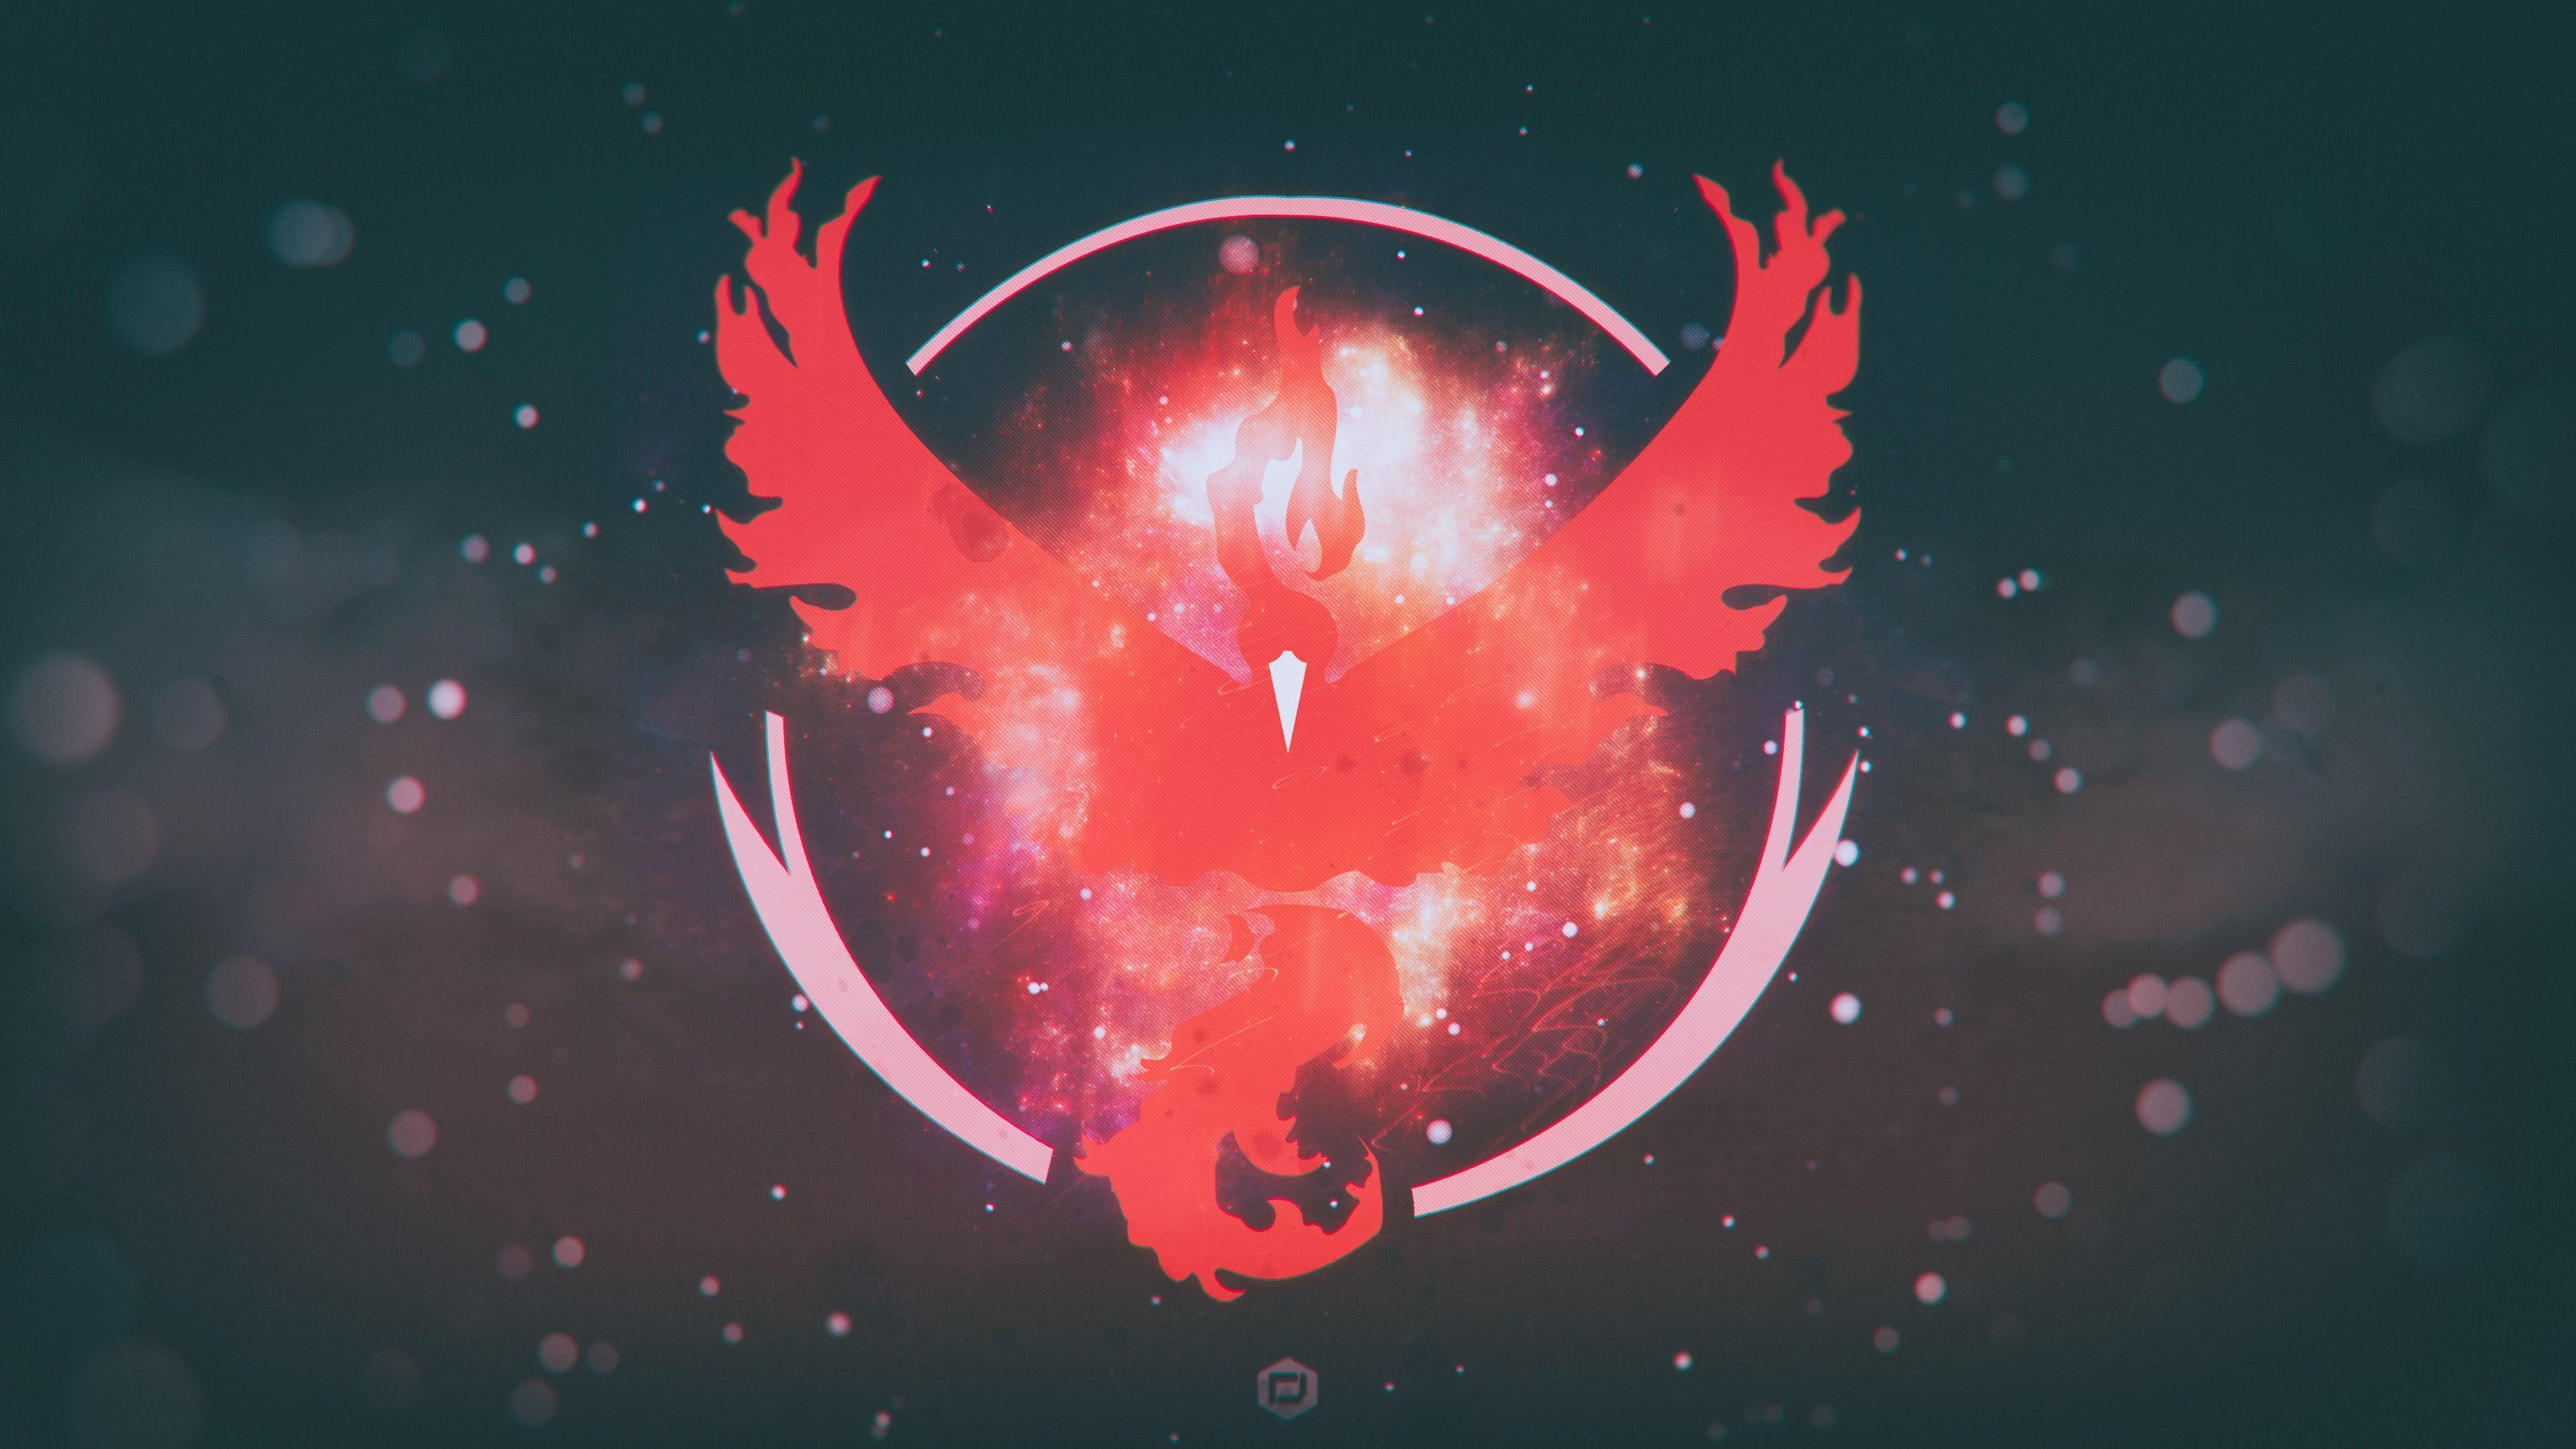 Pokemon Go Team Valor Team Red 4K Wallpapers | HD Wallpapers